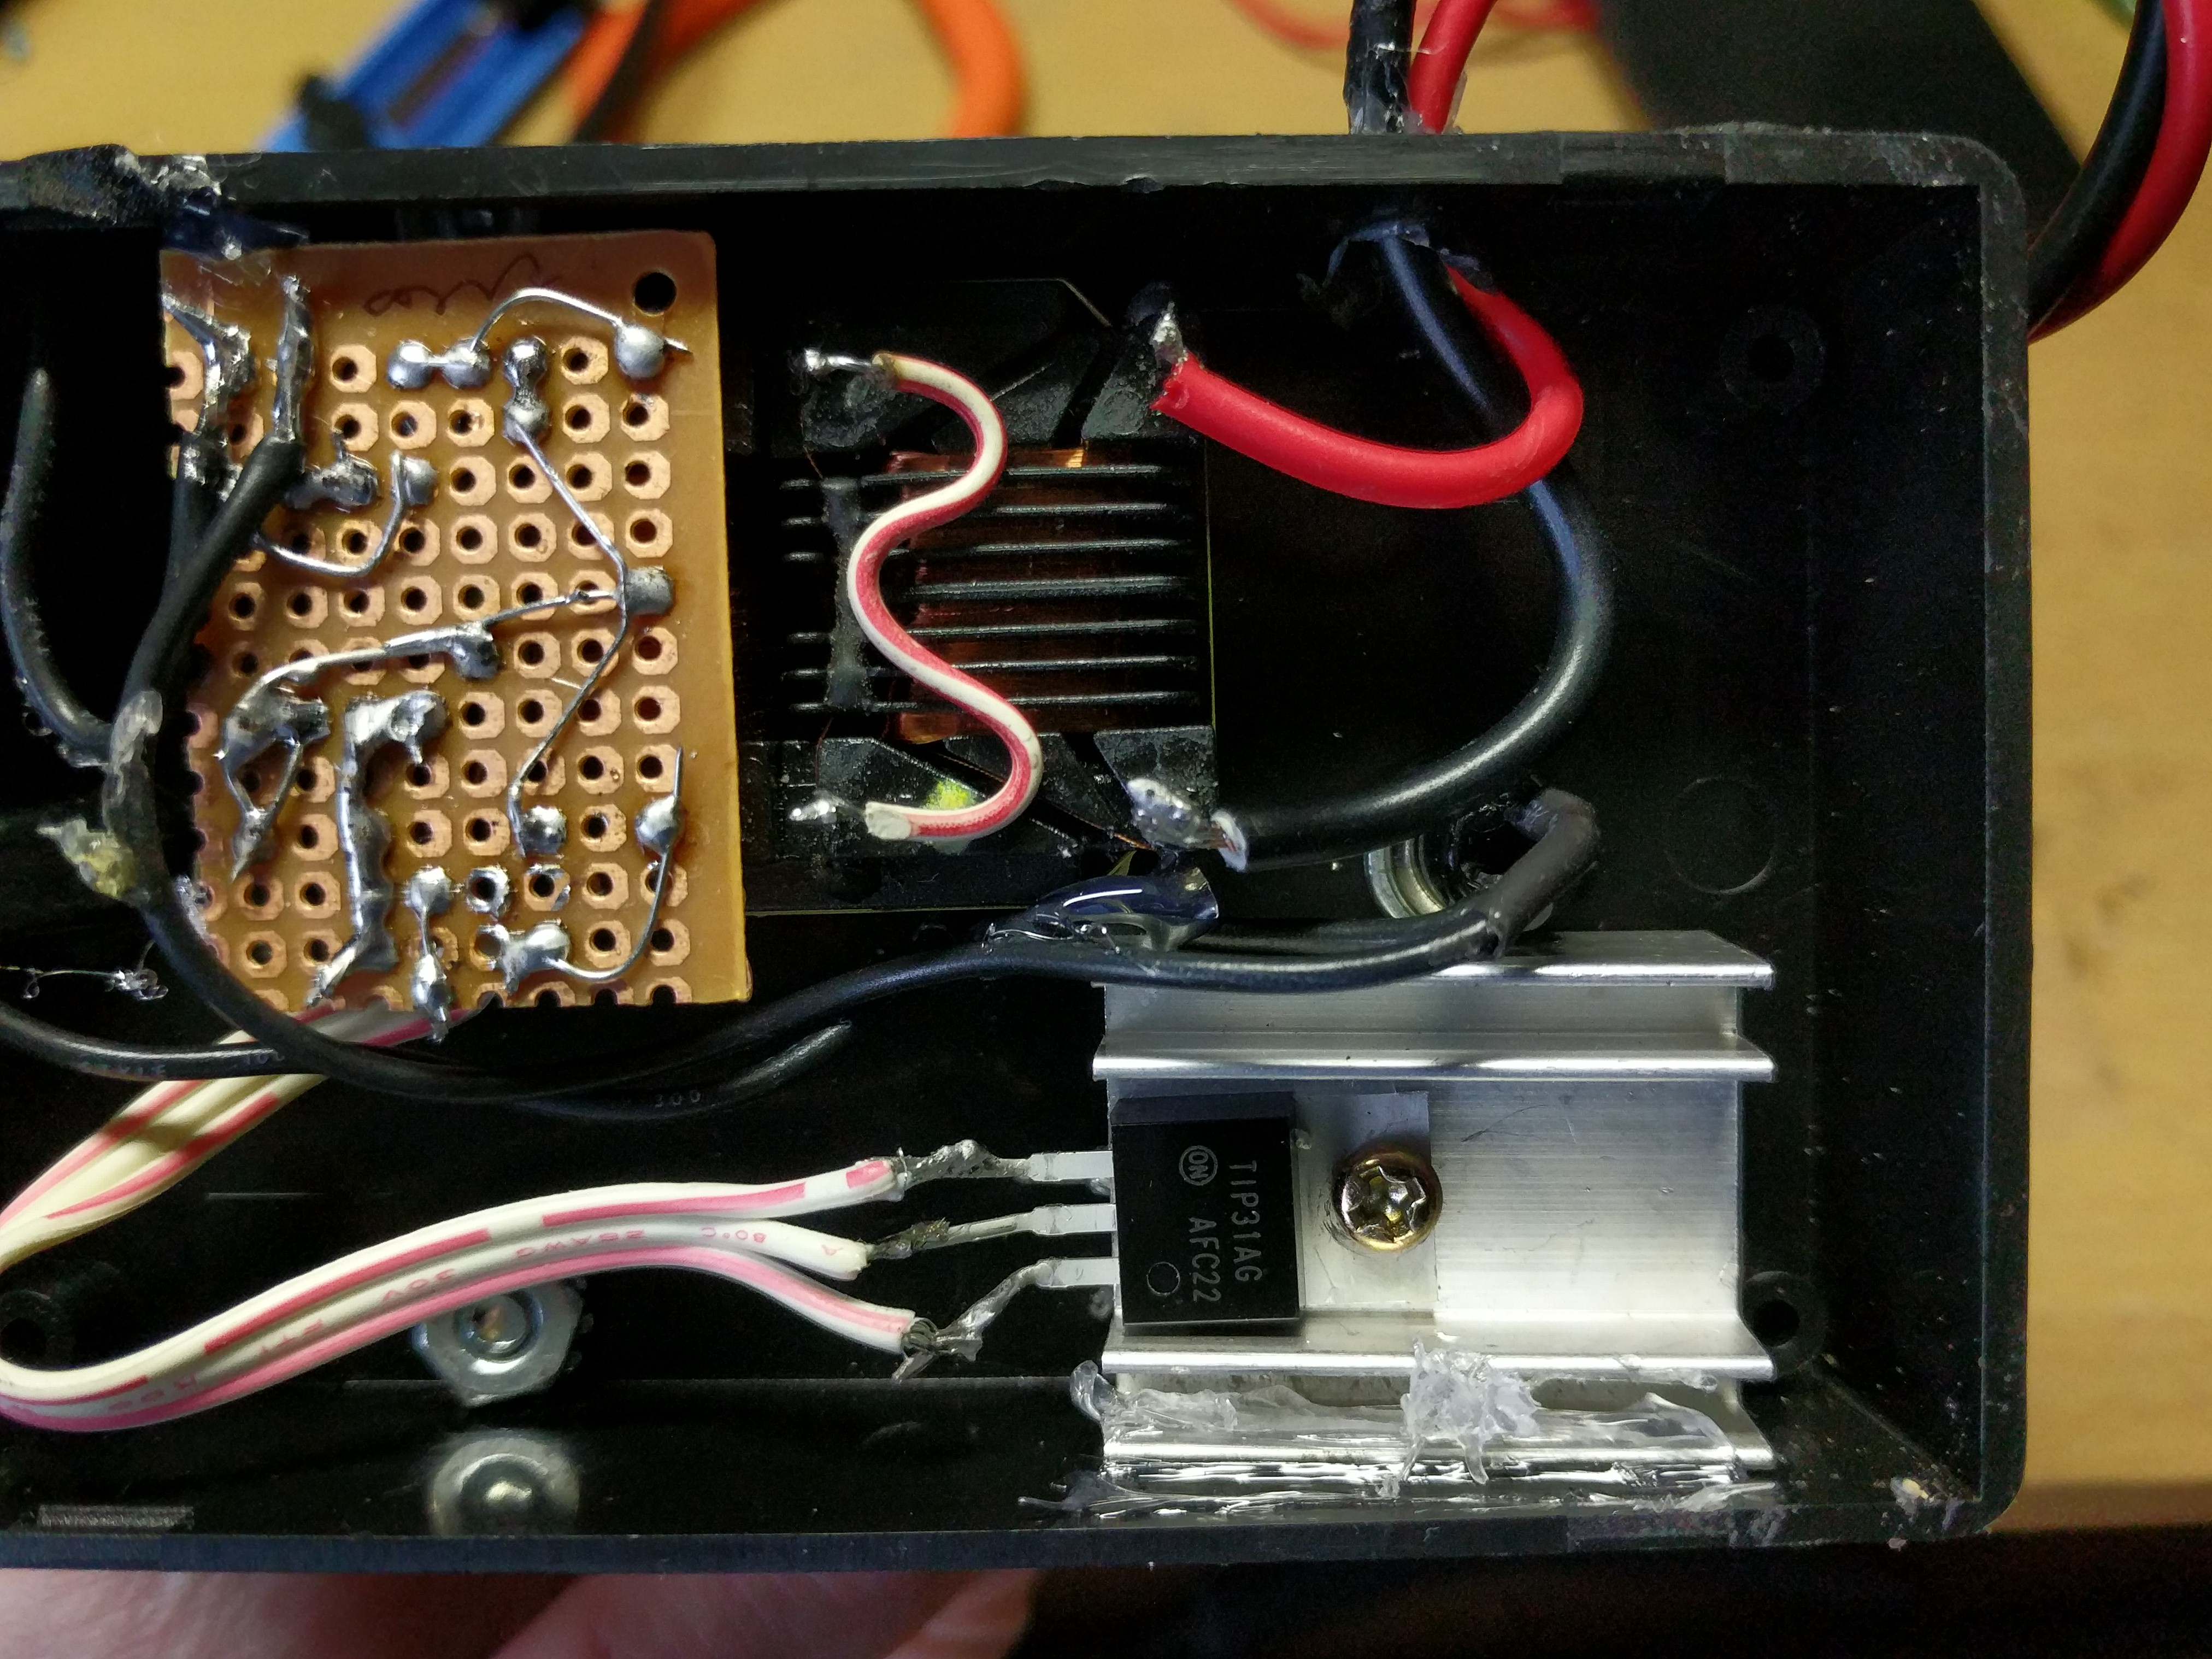 Picture of Wiring the Electronics to the Enclosure